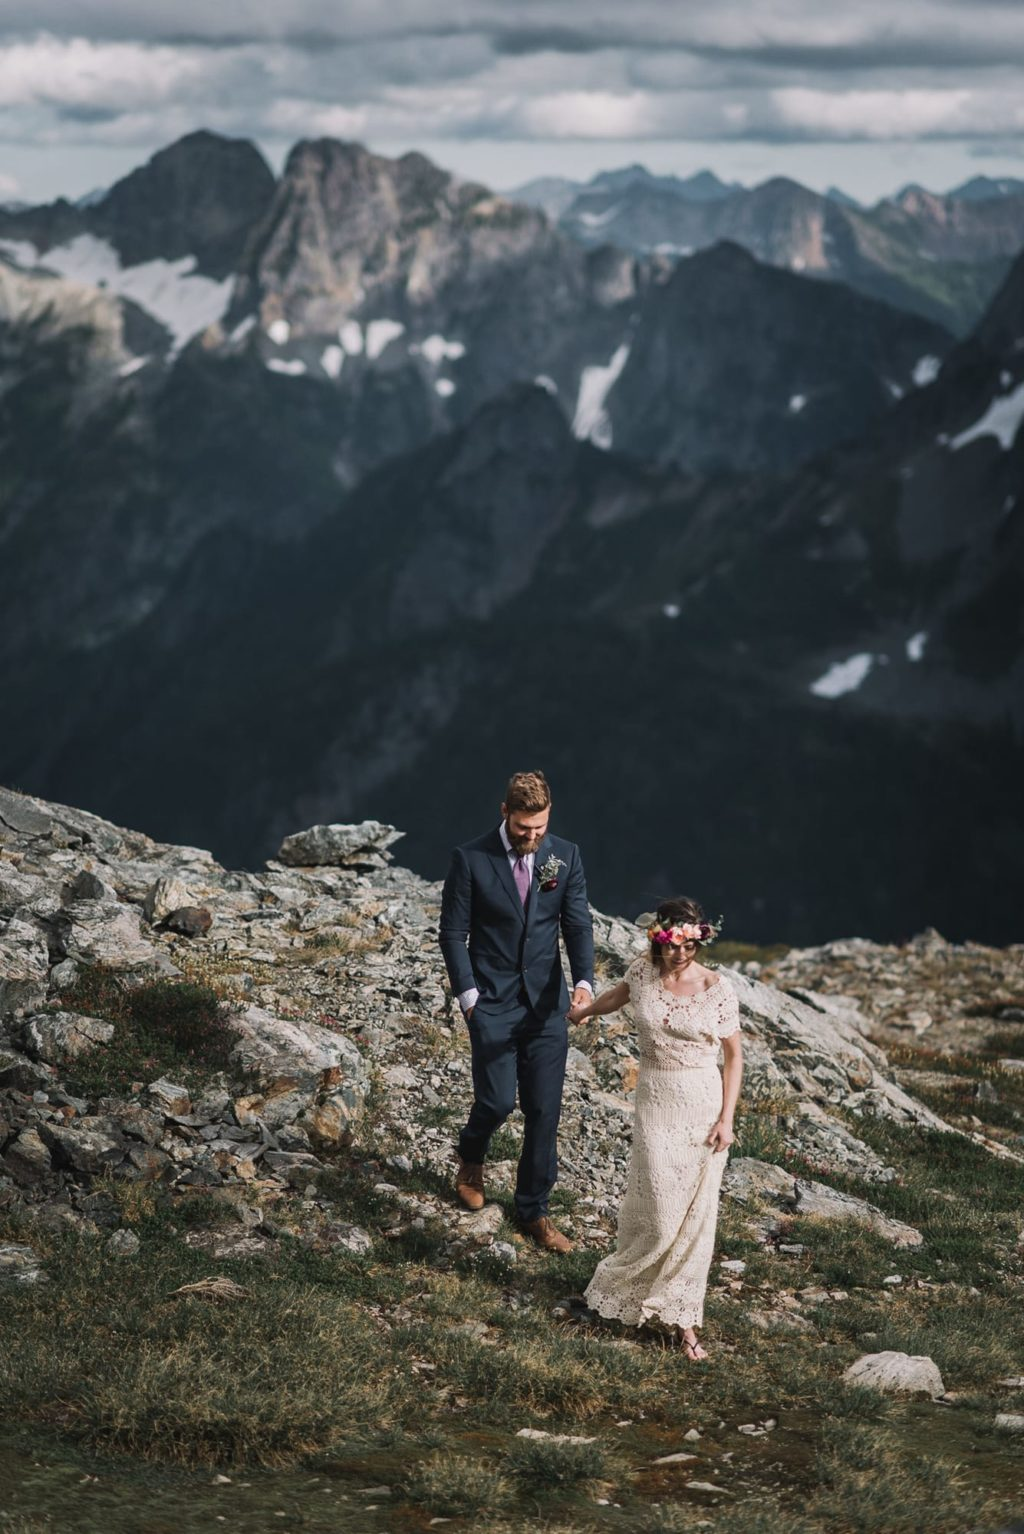 Bride and groom walking away from the mountains